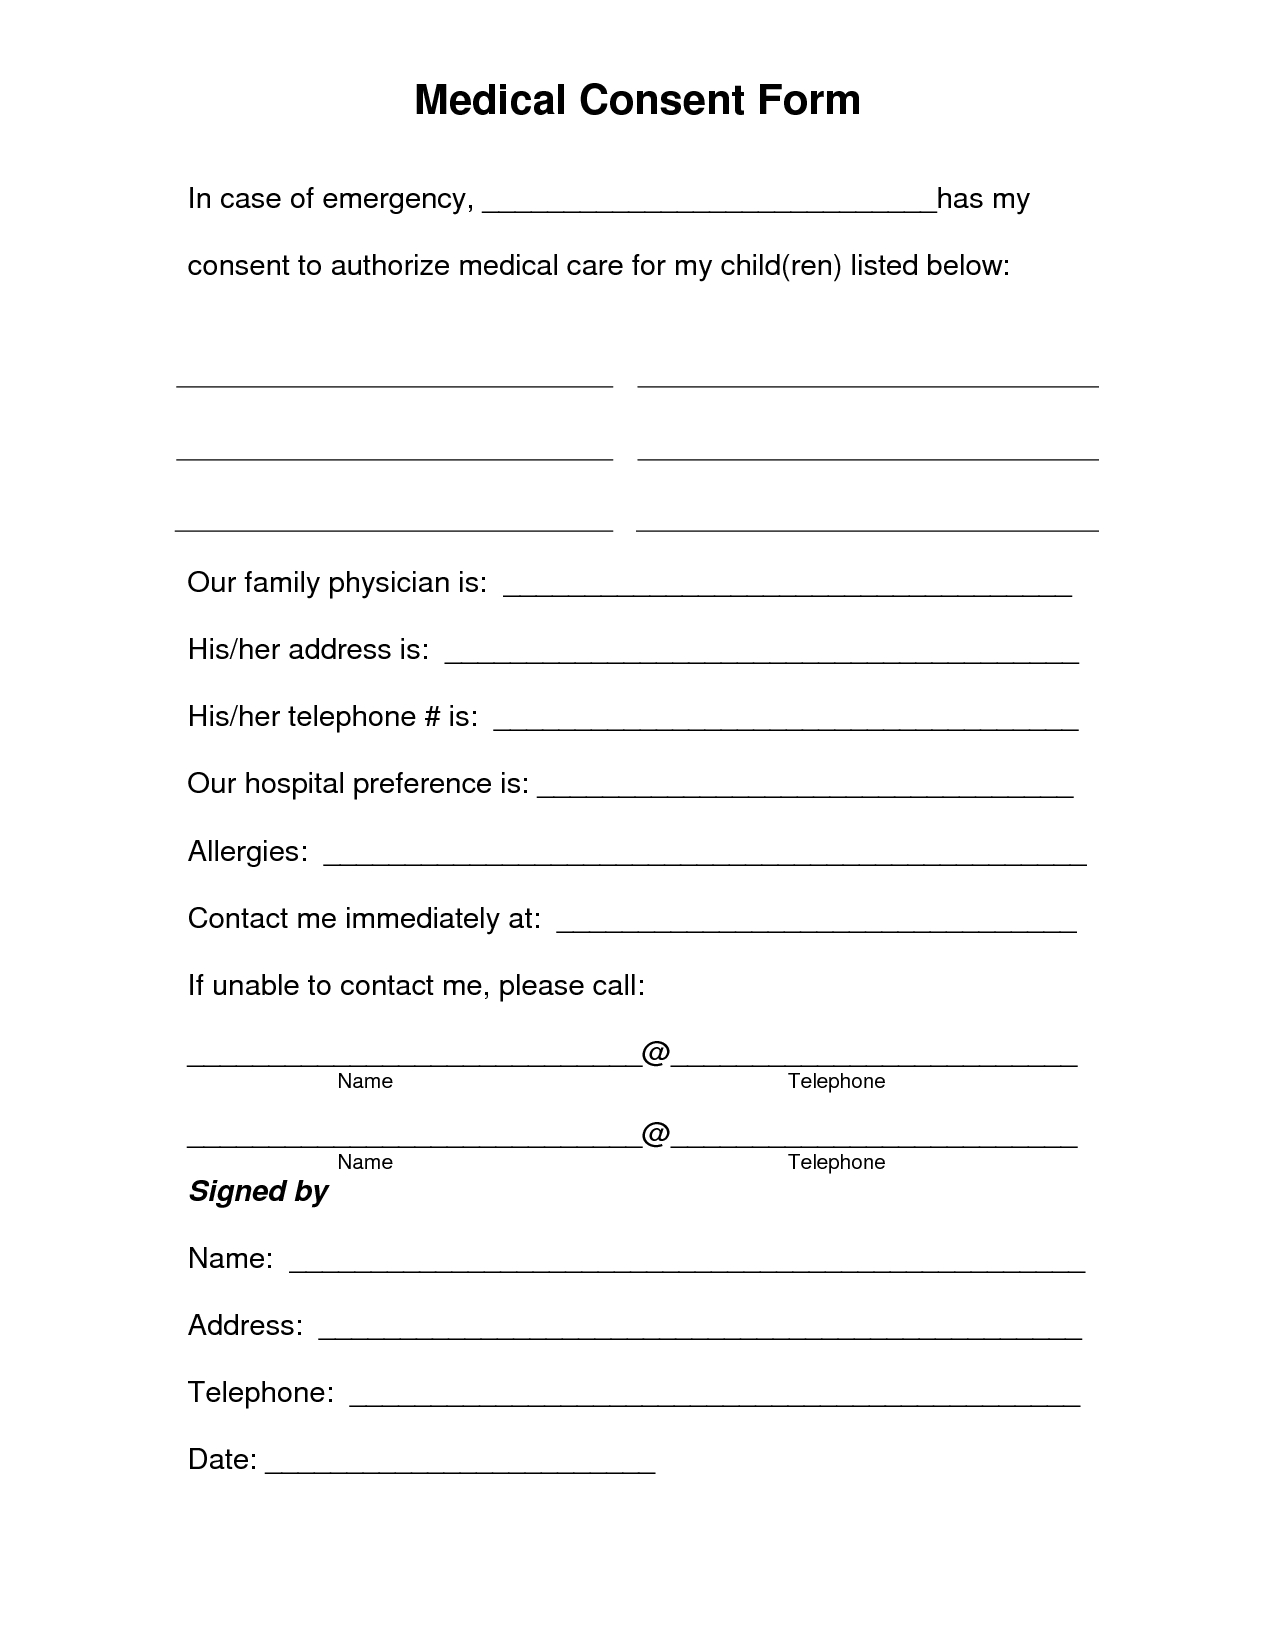 Free Printable Medical Consent Form | Free Medical Consent Form - Free Printable Medical Forms Kit